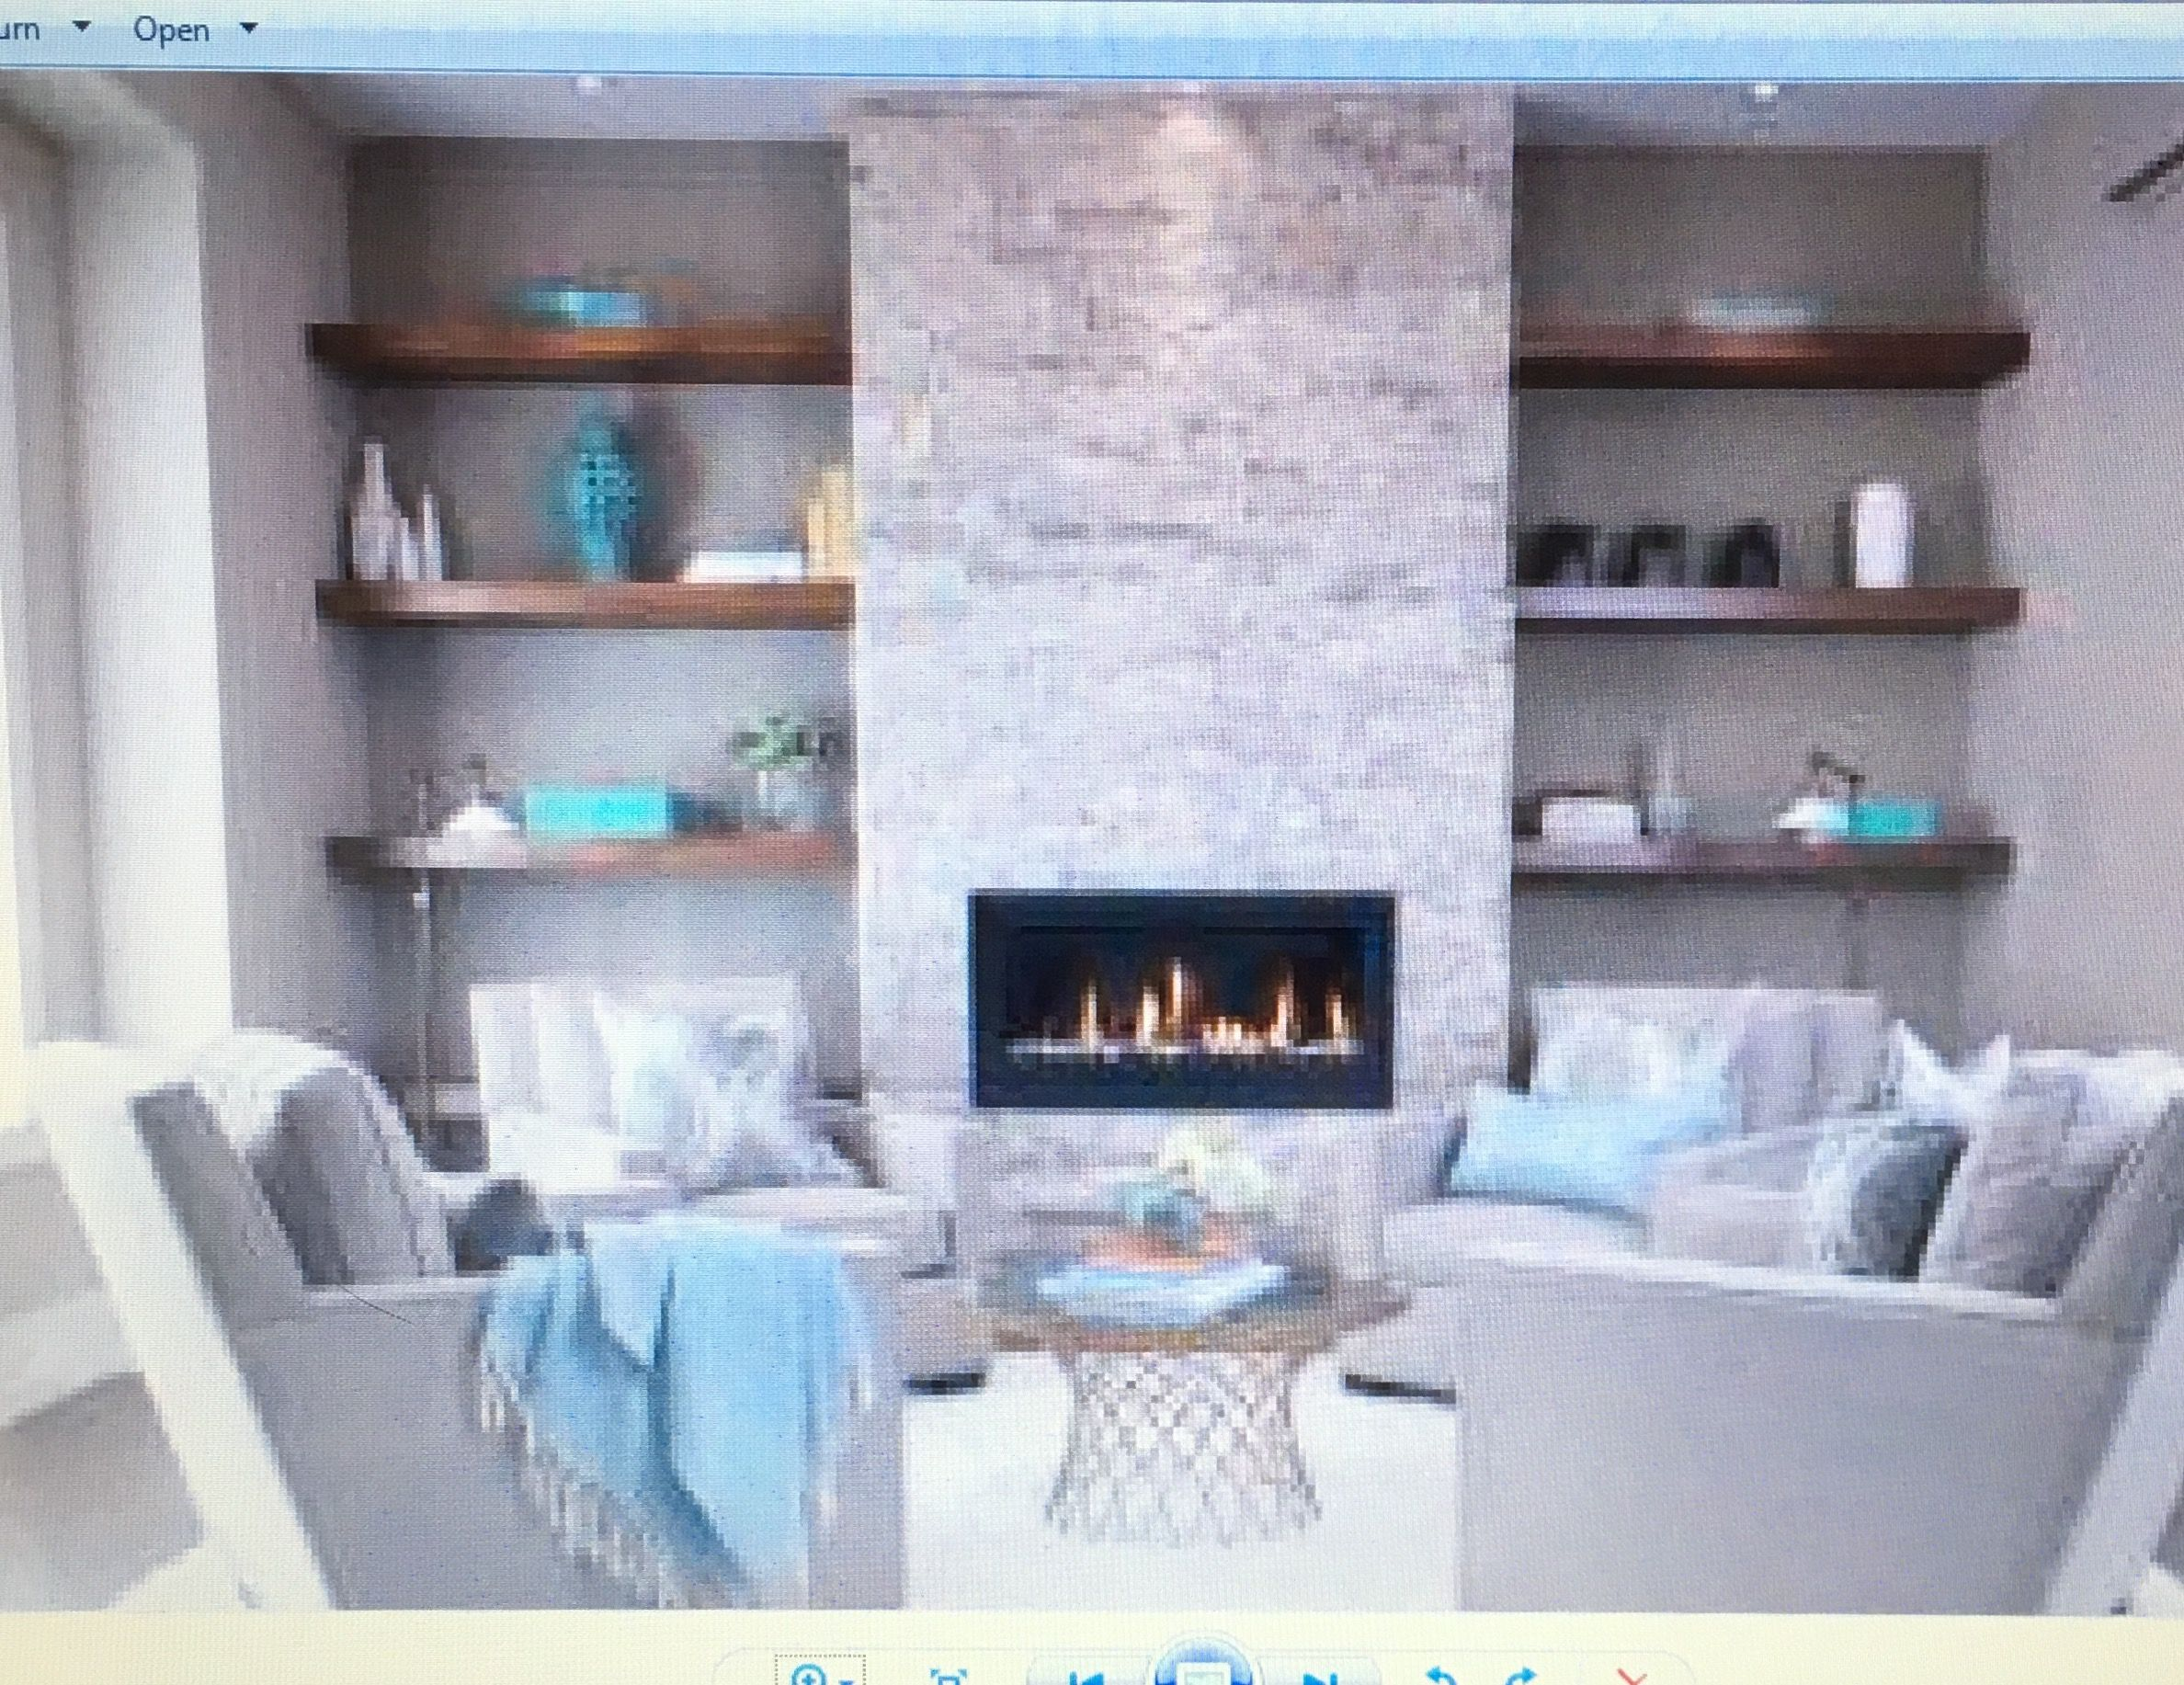 New fireplace with tv eclectic family room minneapolis - The Floating Shelves Surrounding Bumped Out Tv Fireplace Wall